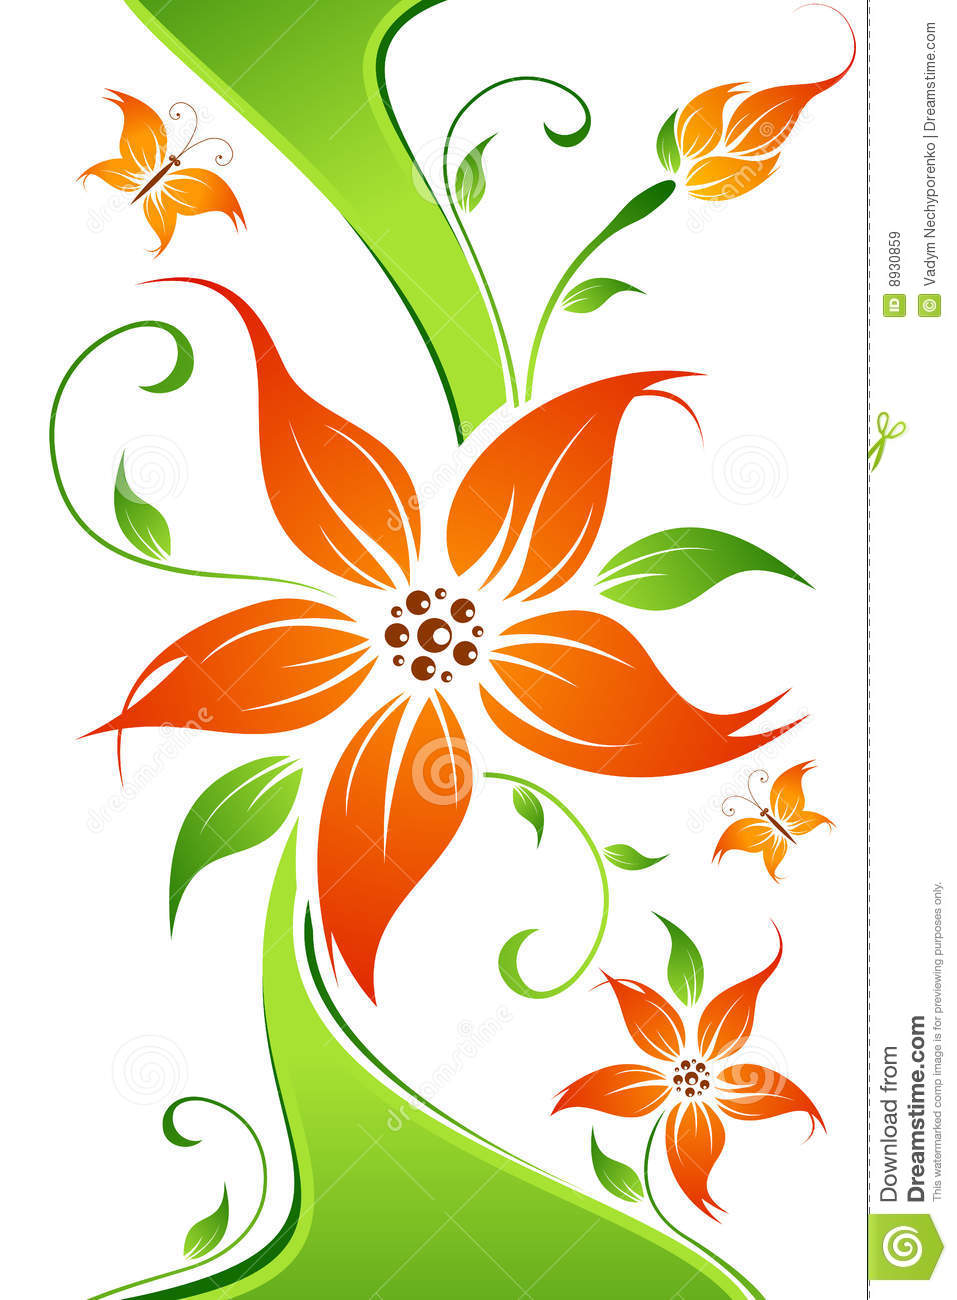 Dragon vector sign stock vector 313643336 shutterstock - Abstract Vector Flower Background With Butterfly Royalty Free Stock